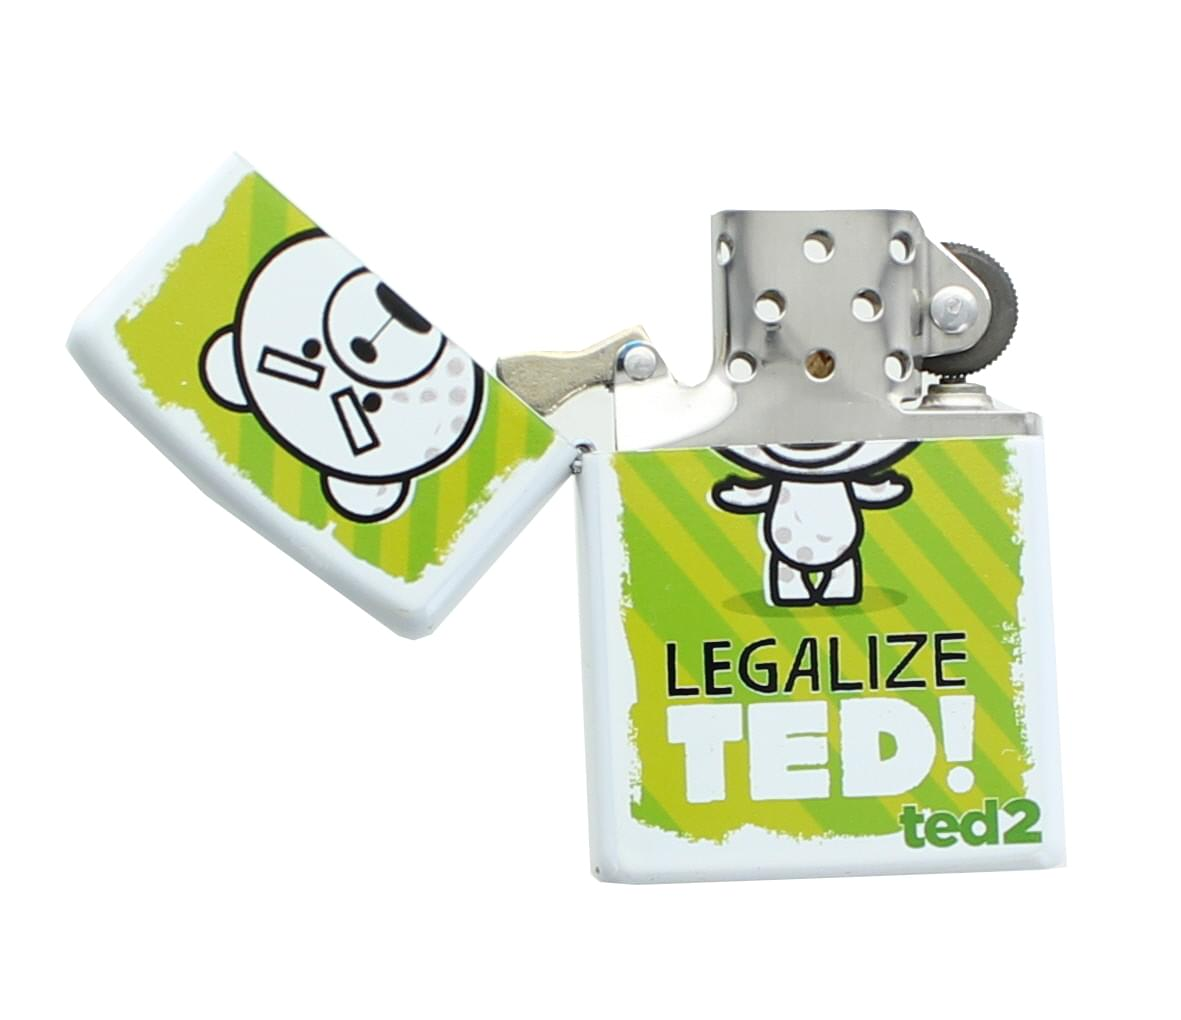 Ted 2 Legalize Ted! Metal Torch Lighter